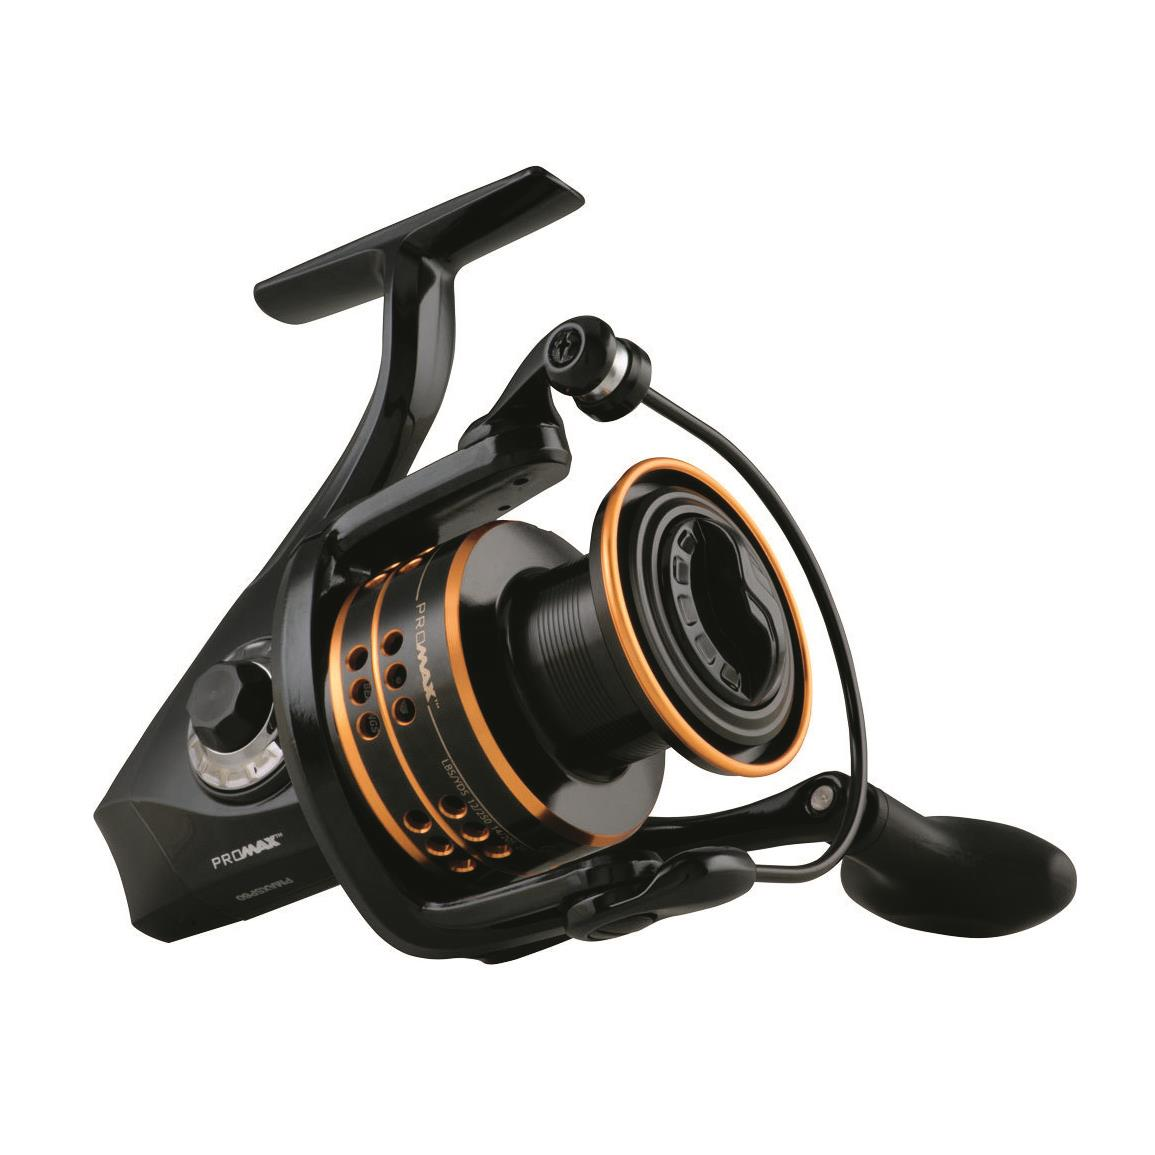 Abu Garcia Pro Max Spinning Fishing Reel